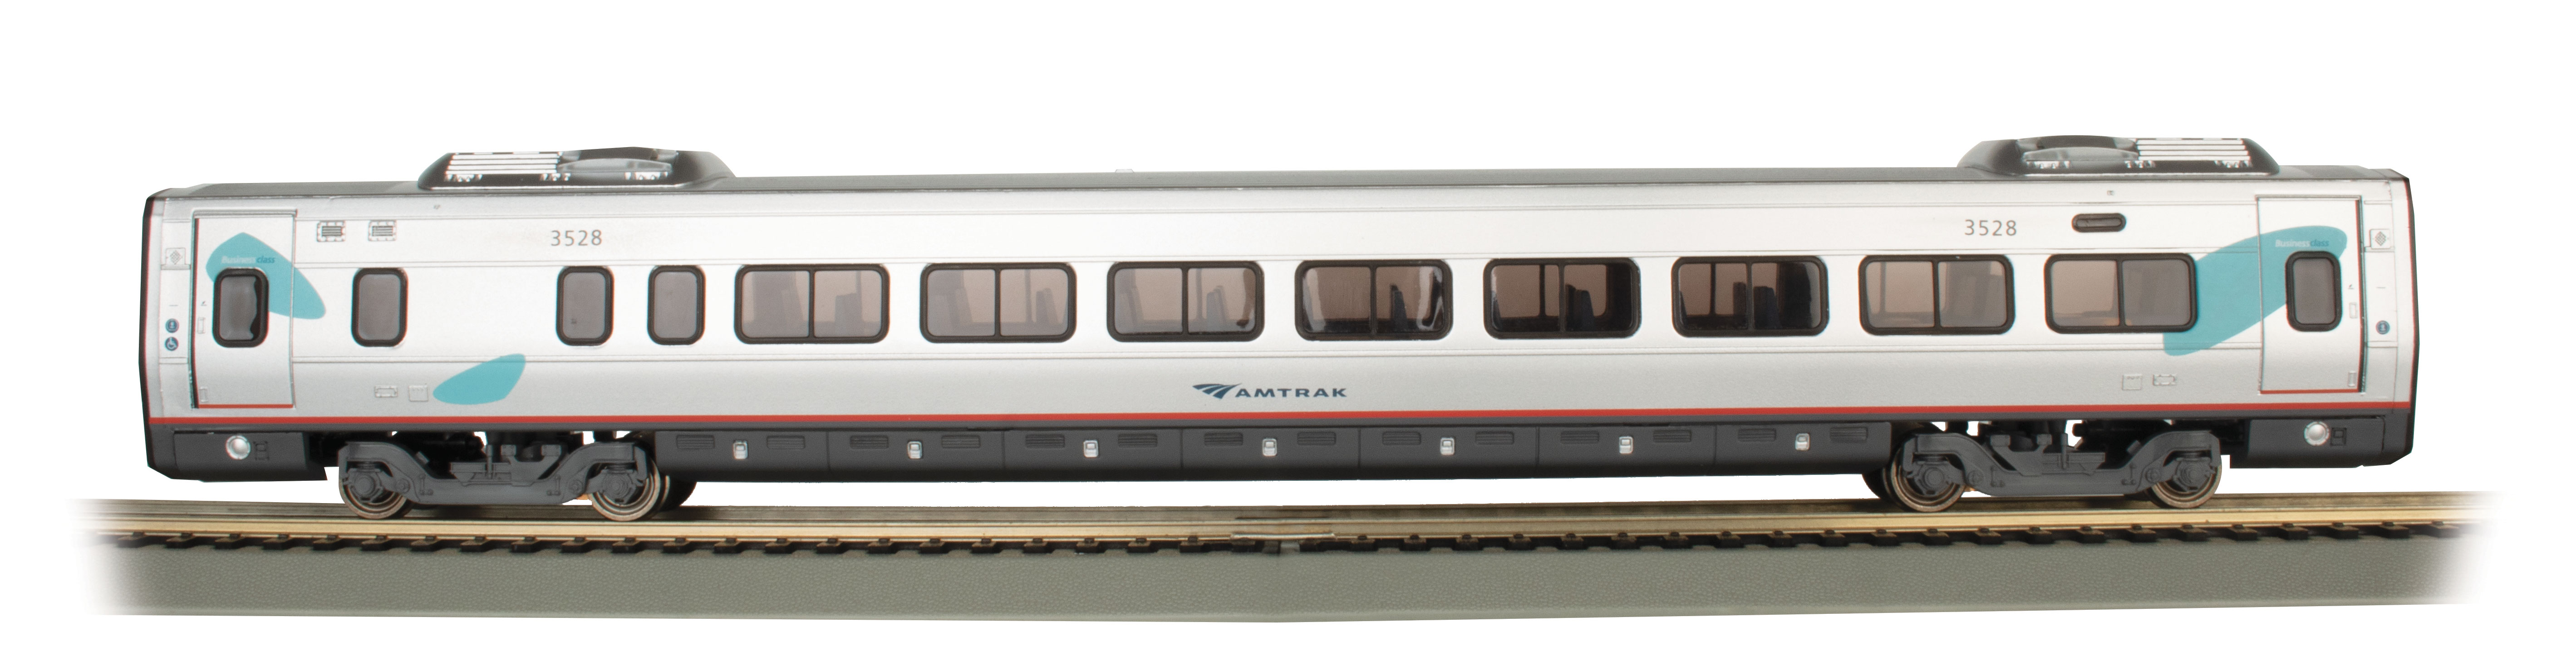 Acela Express® Business Class Car #3528